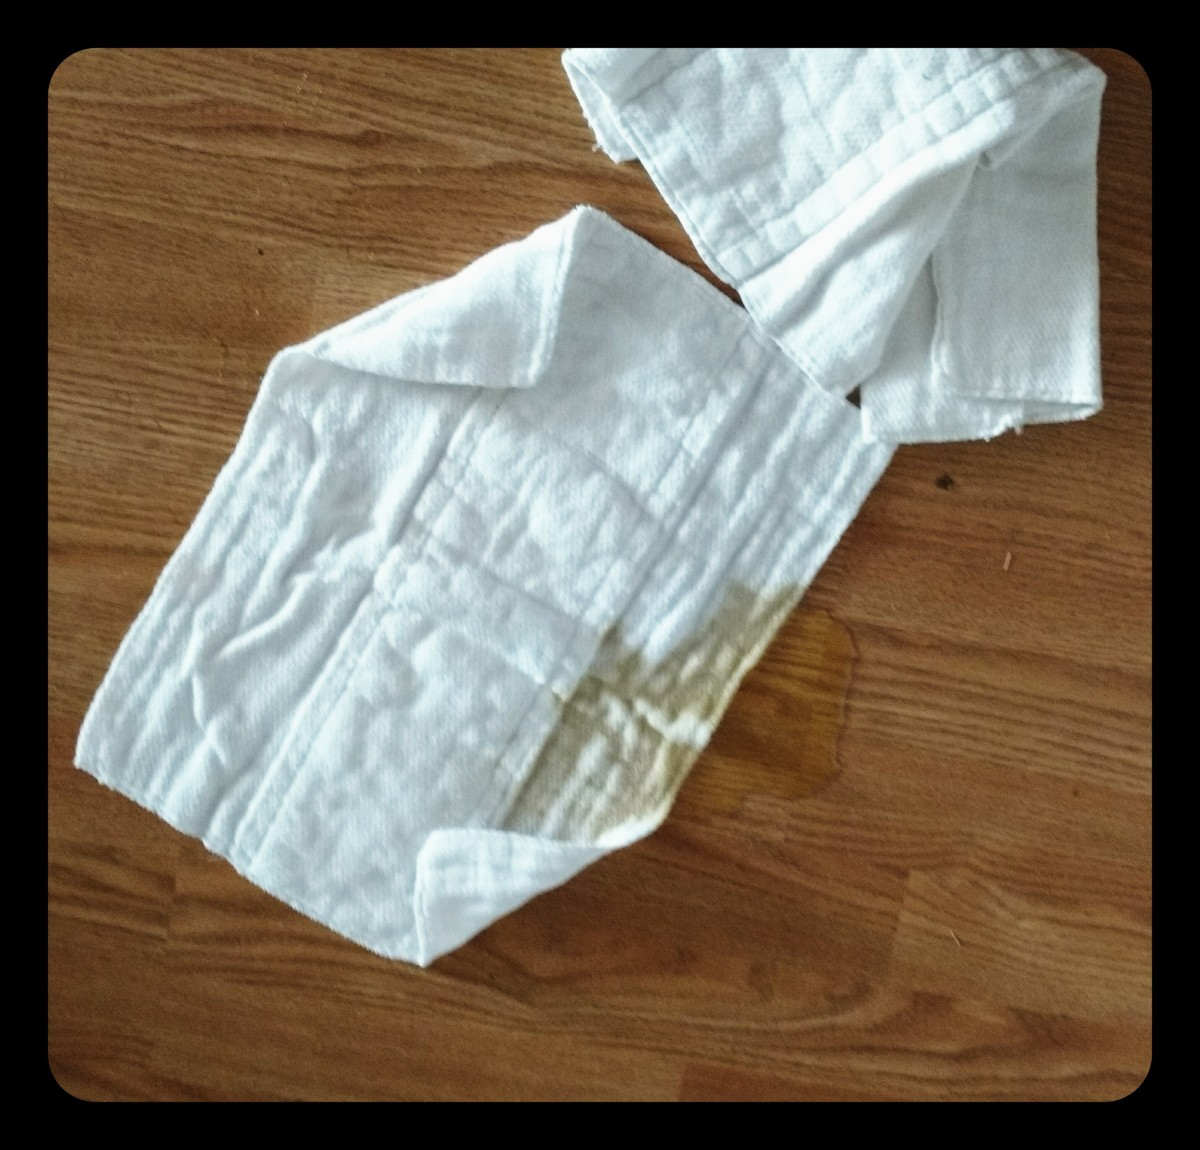 As I set up to take a picture of these baby diaper now wash rags I discovered my puppy peed. See how quickly they absorb. It was an easy clean up.